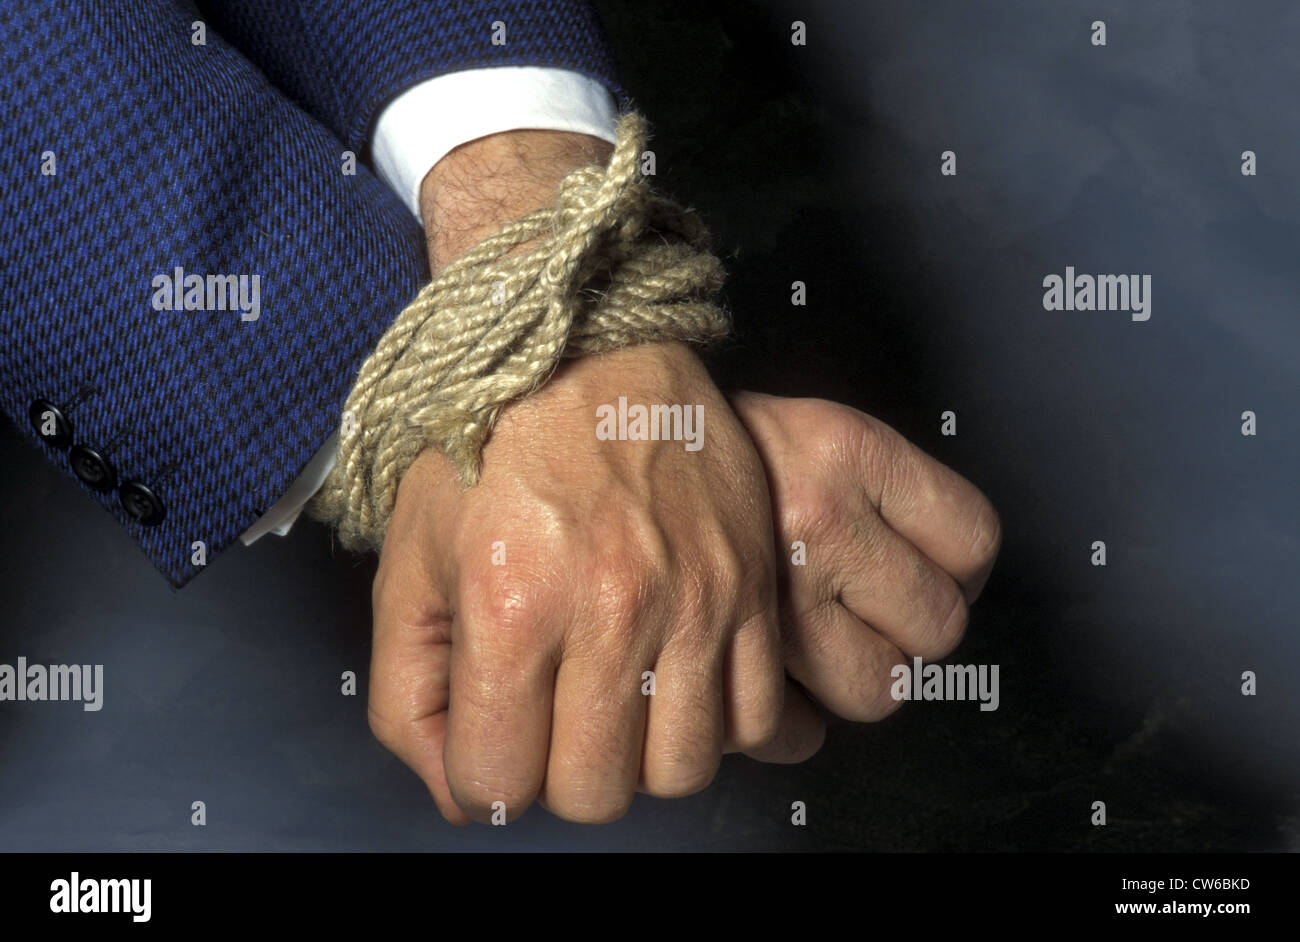 hands of a business man in chains - Stock Image